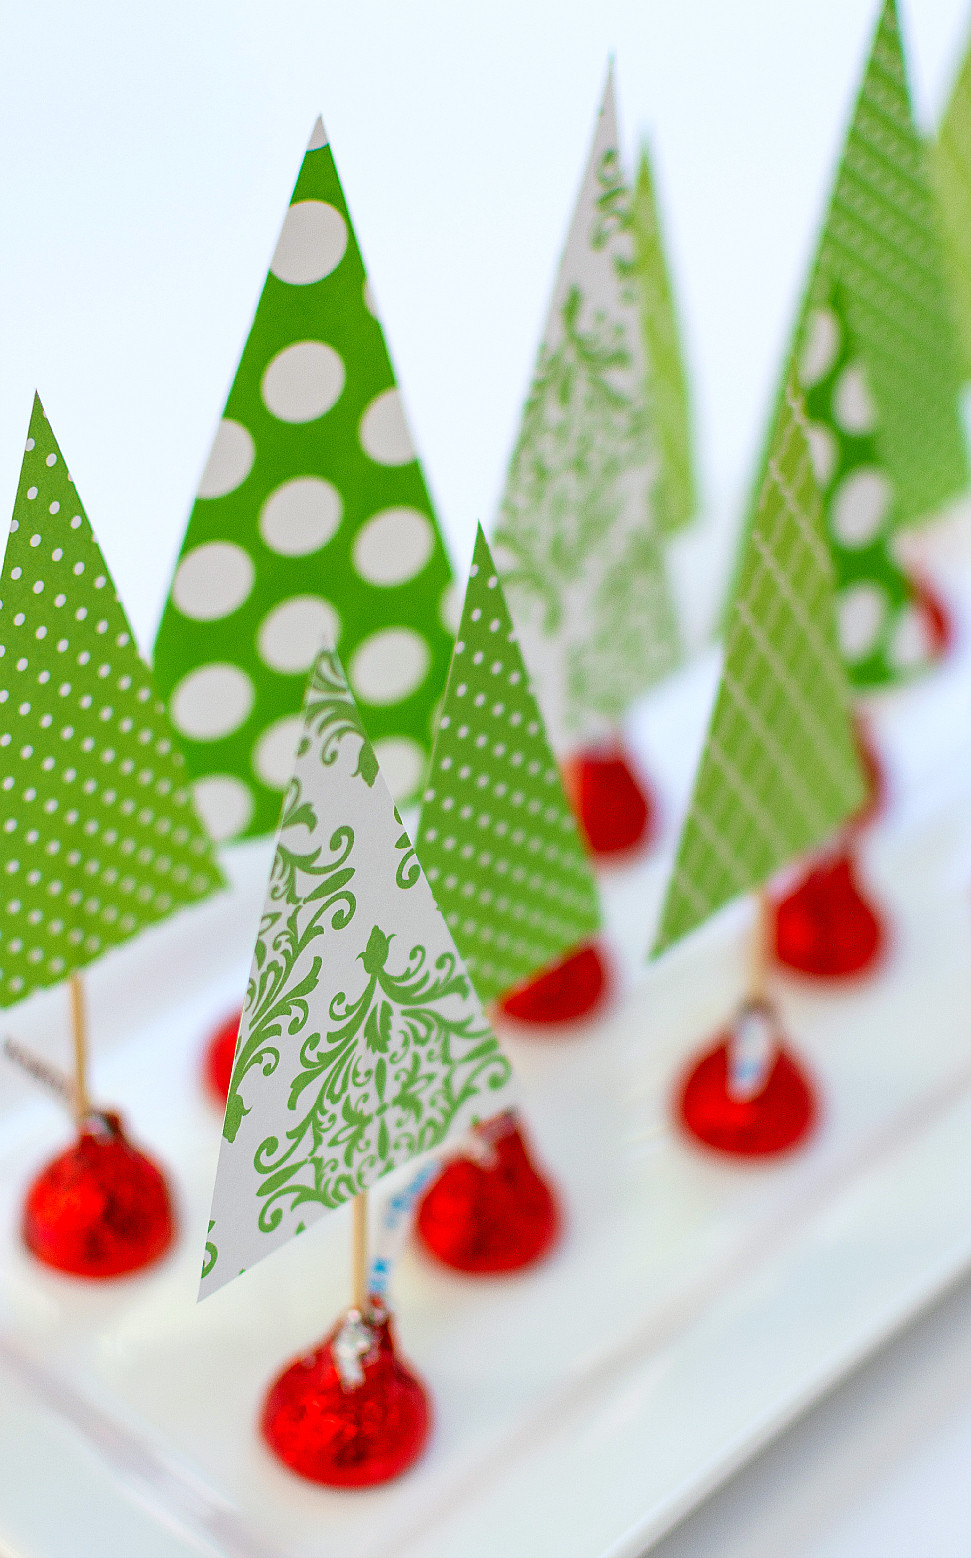 Best ideas about Christmas Craft Ideas For Children . Save or Pin Christmas Crafts with Kids Now.